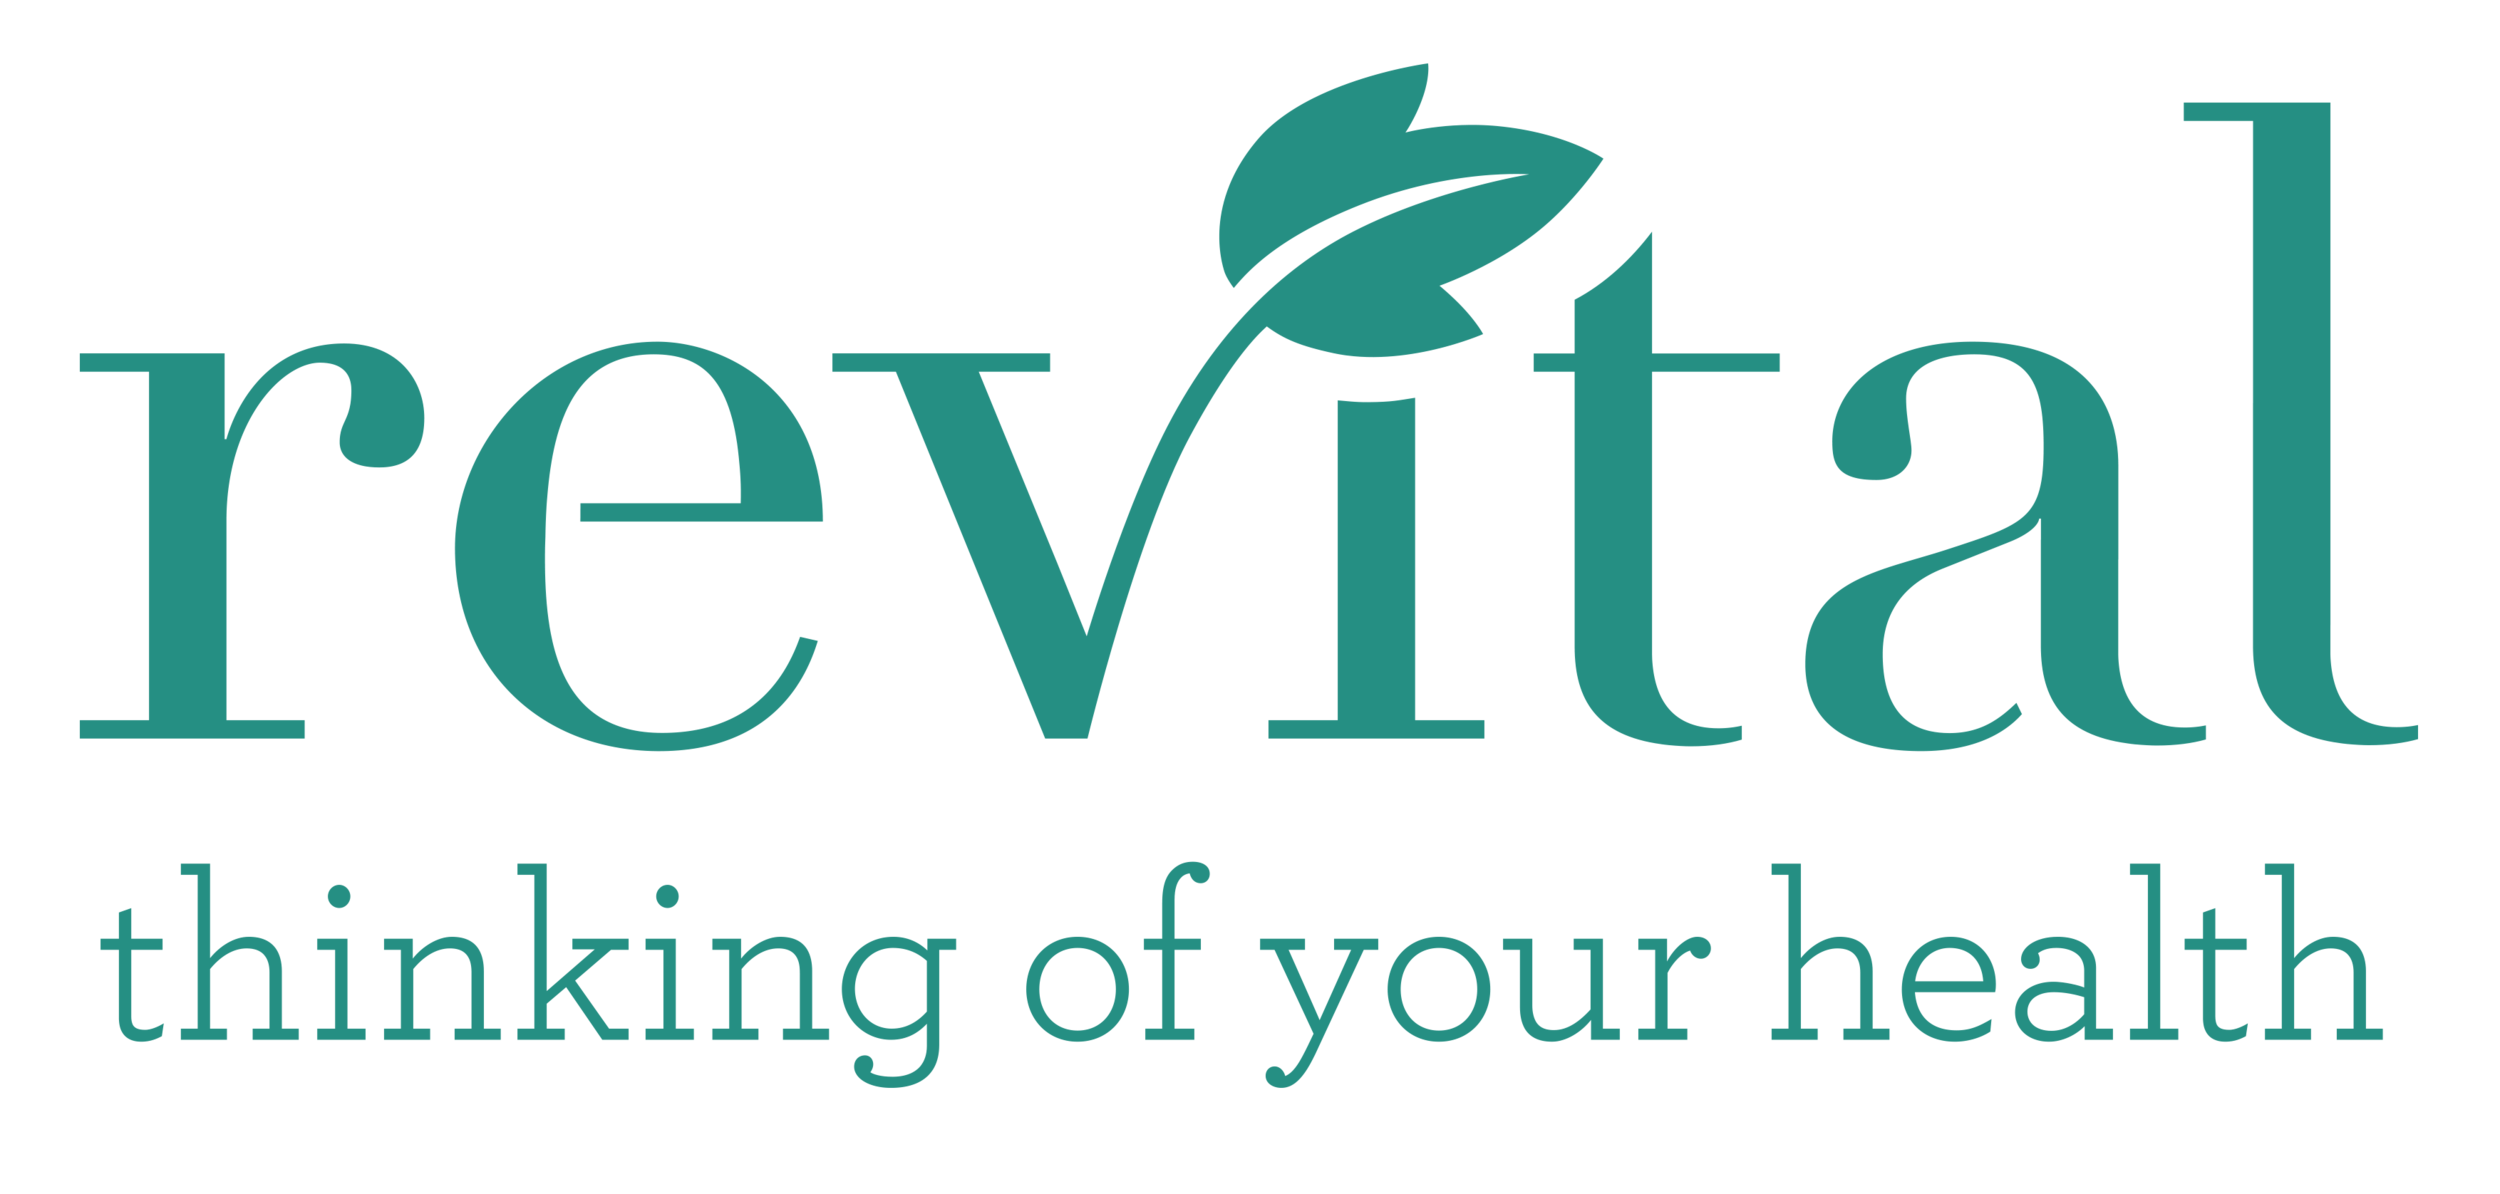 Revital-logo copy.png